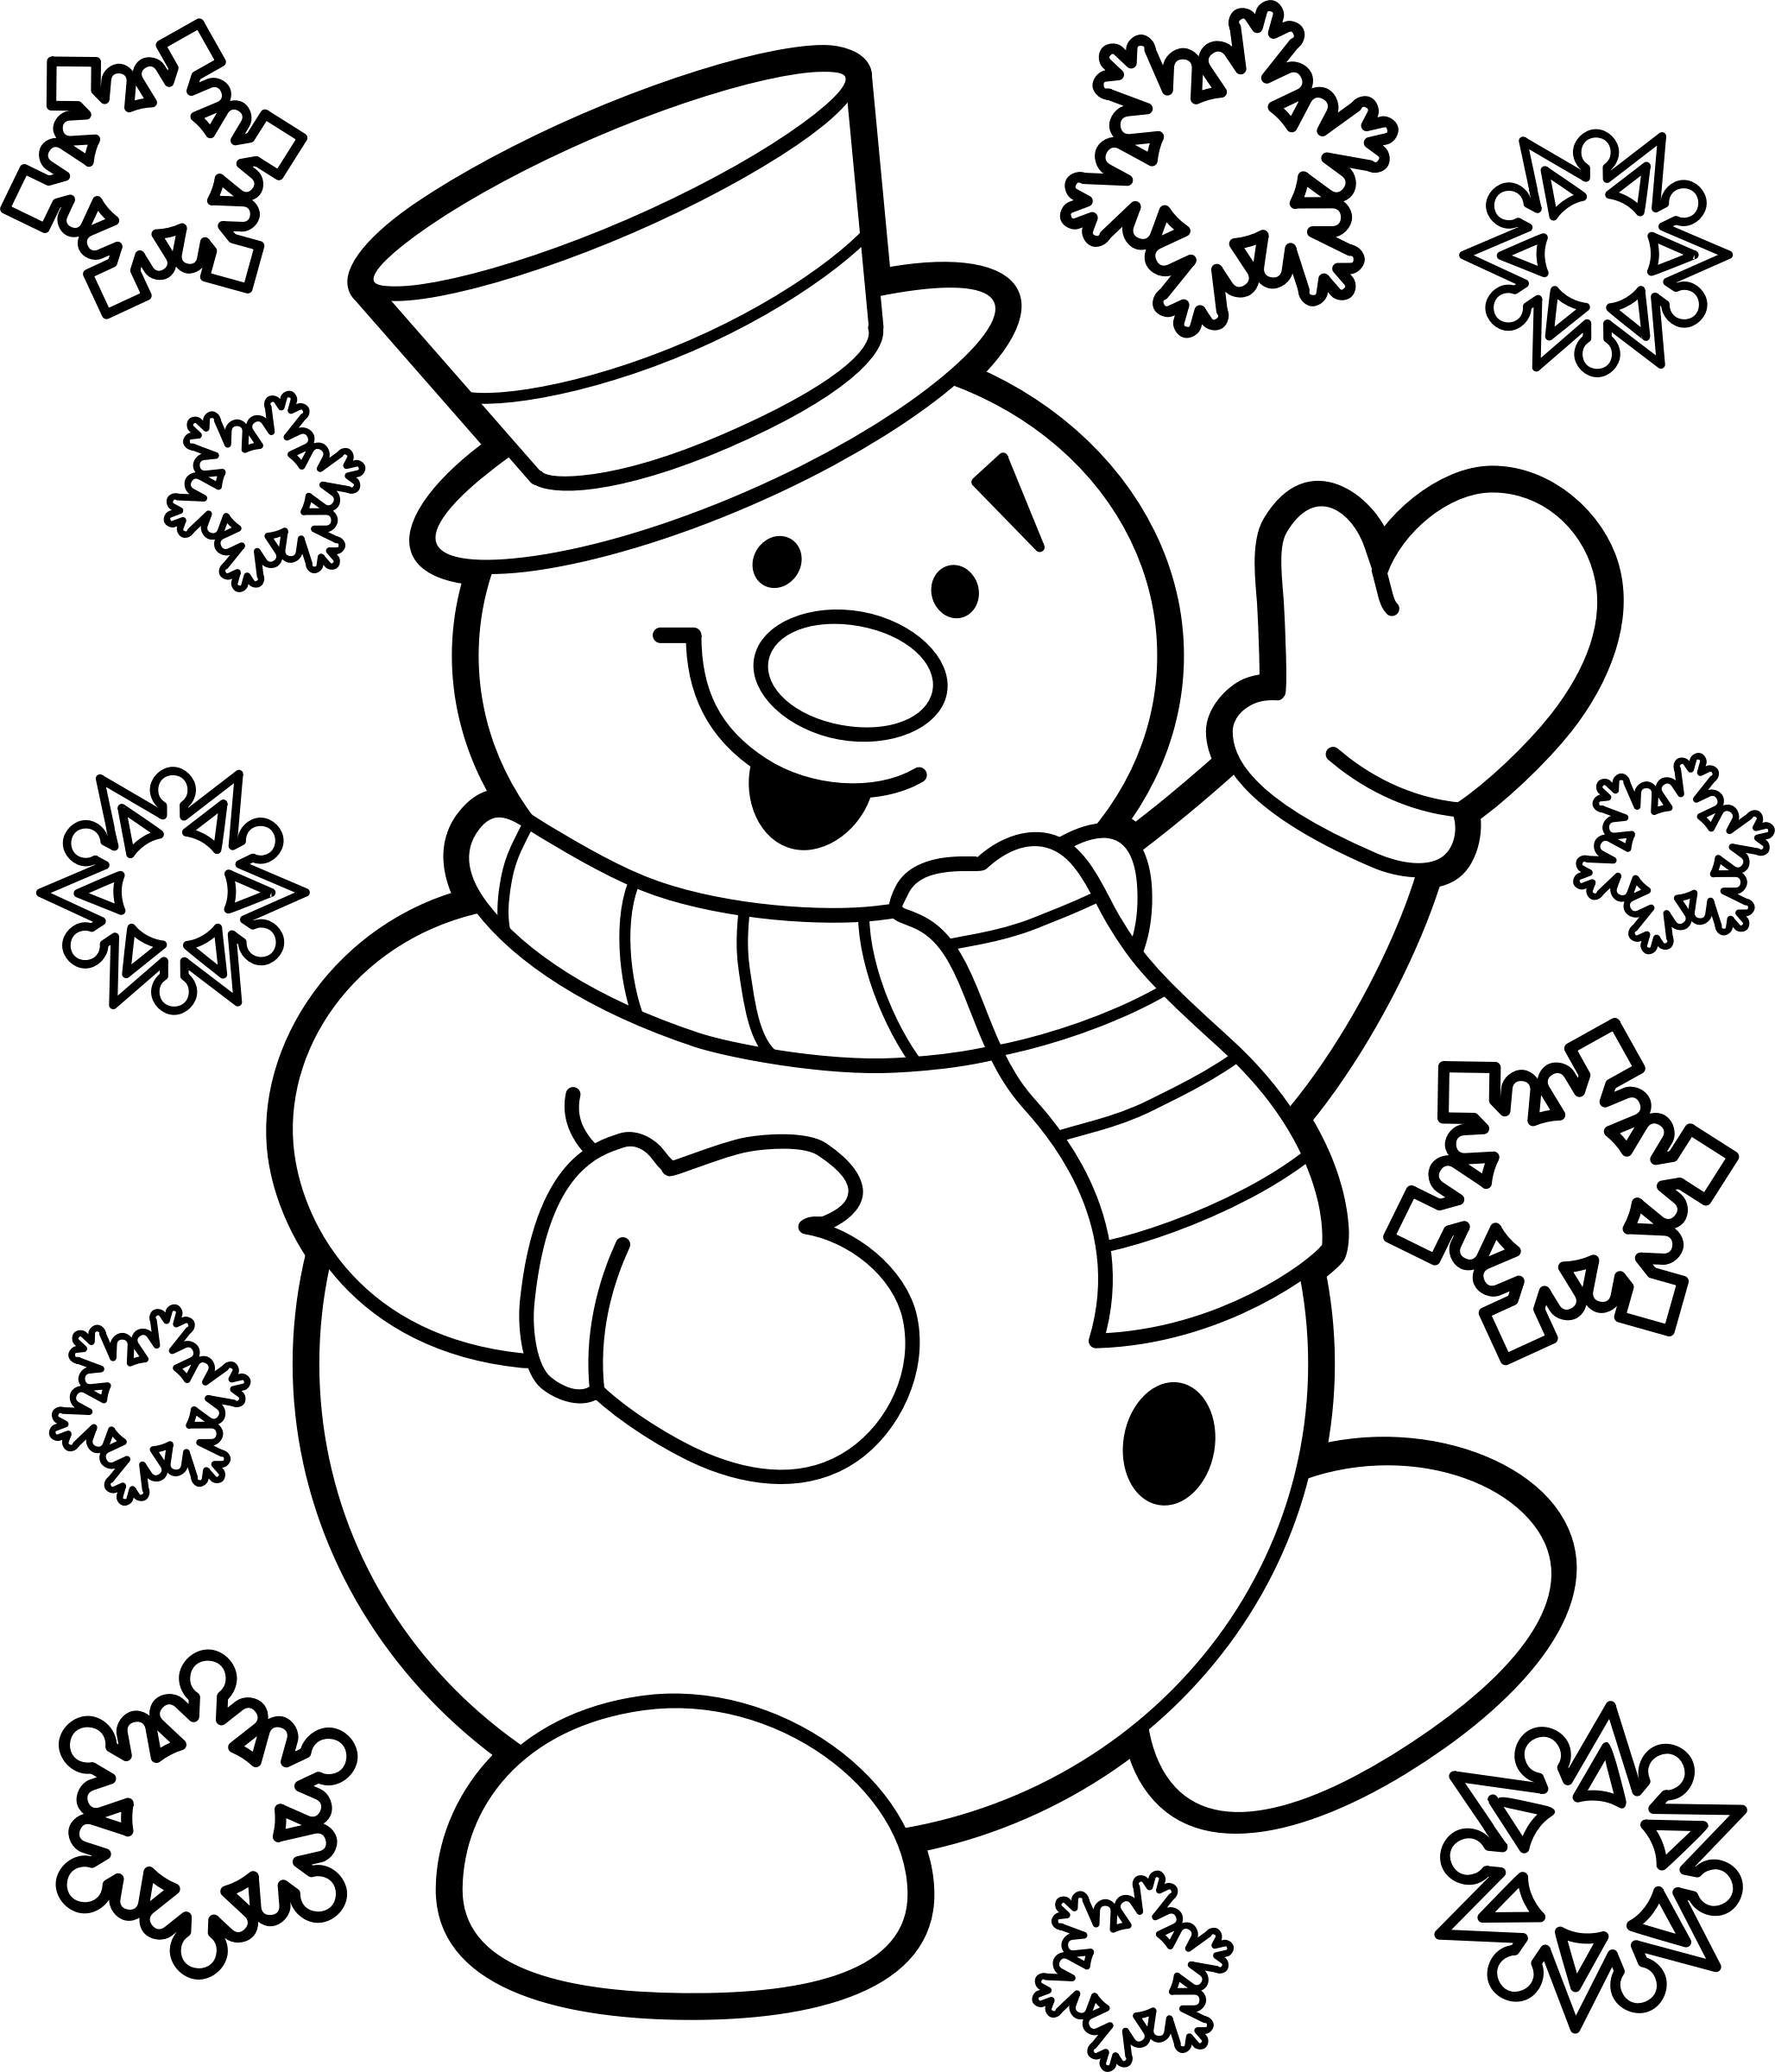 Snowman clipart black and white to color freeuse stock Snowman black and white snowman clipart black and white ... freeuse stock